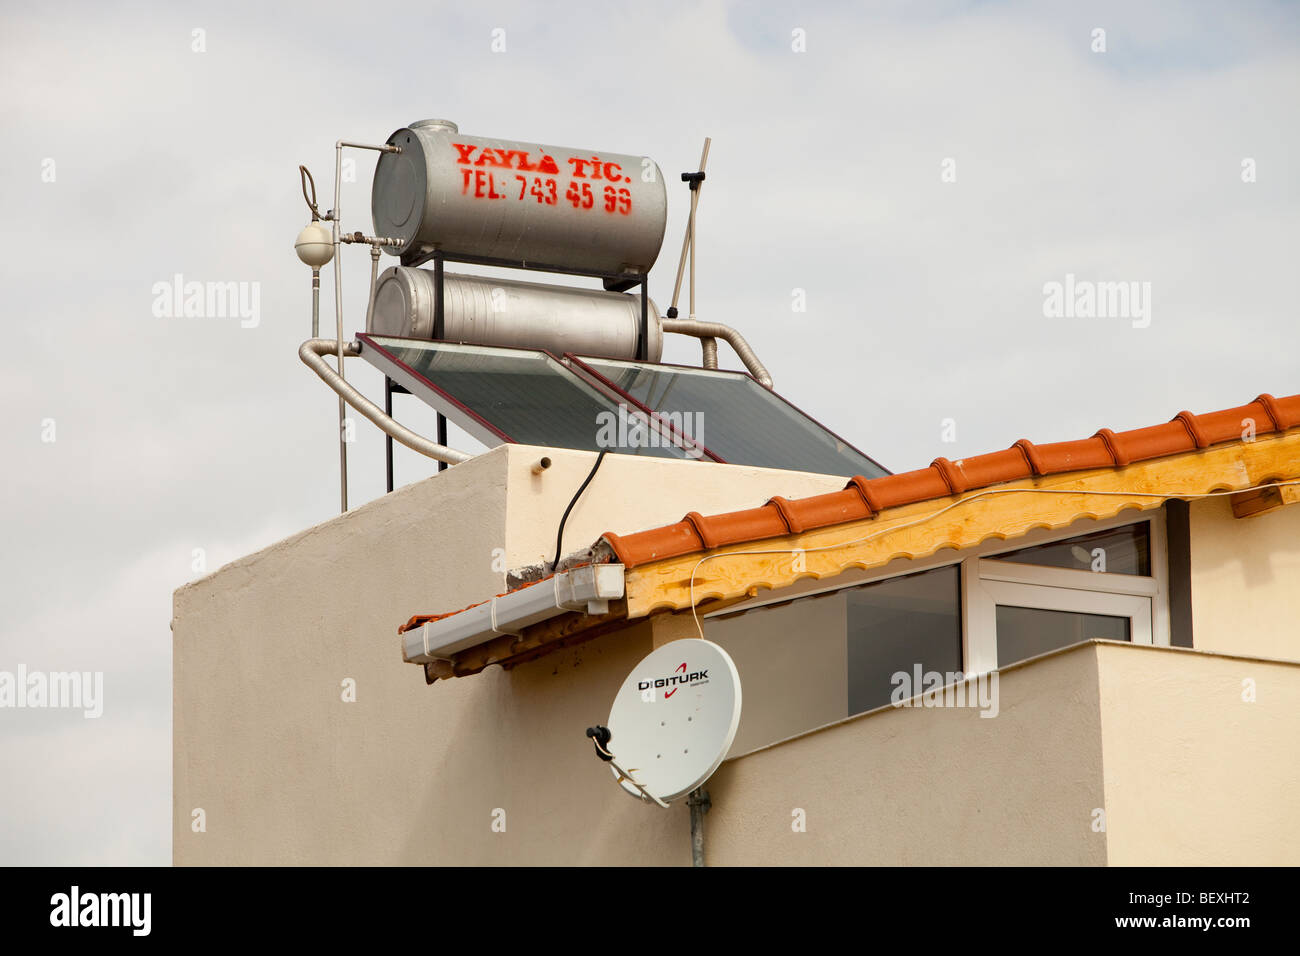 Solar water heating panels on a house roof in Teos, Turkey. - Stock Image